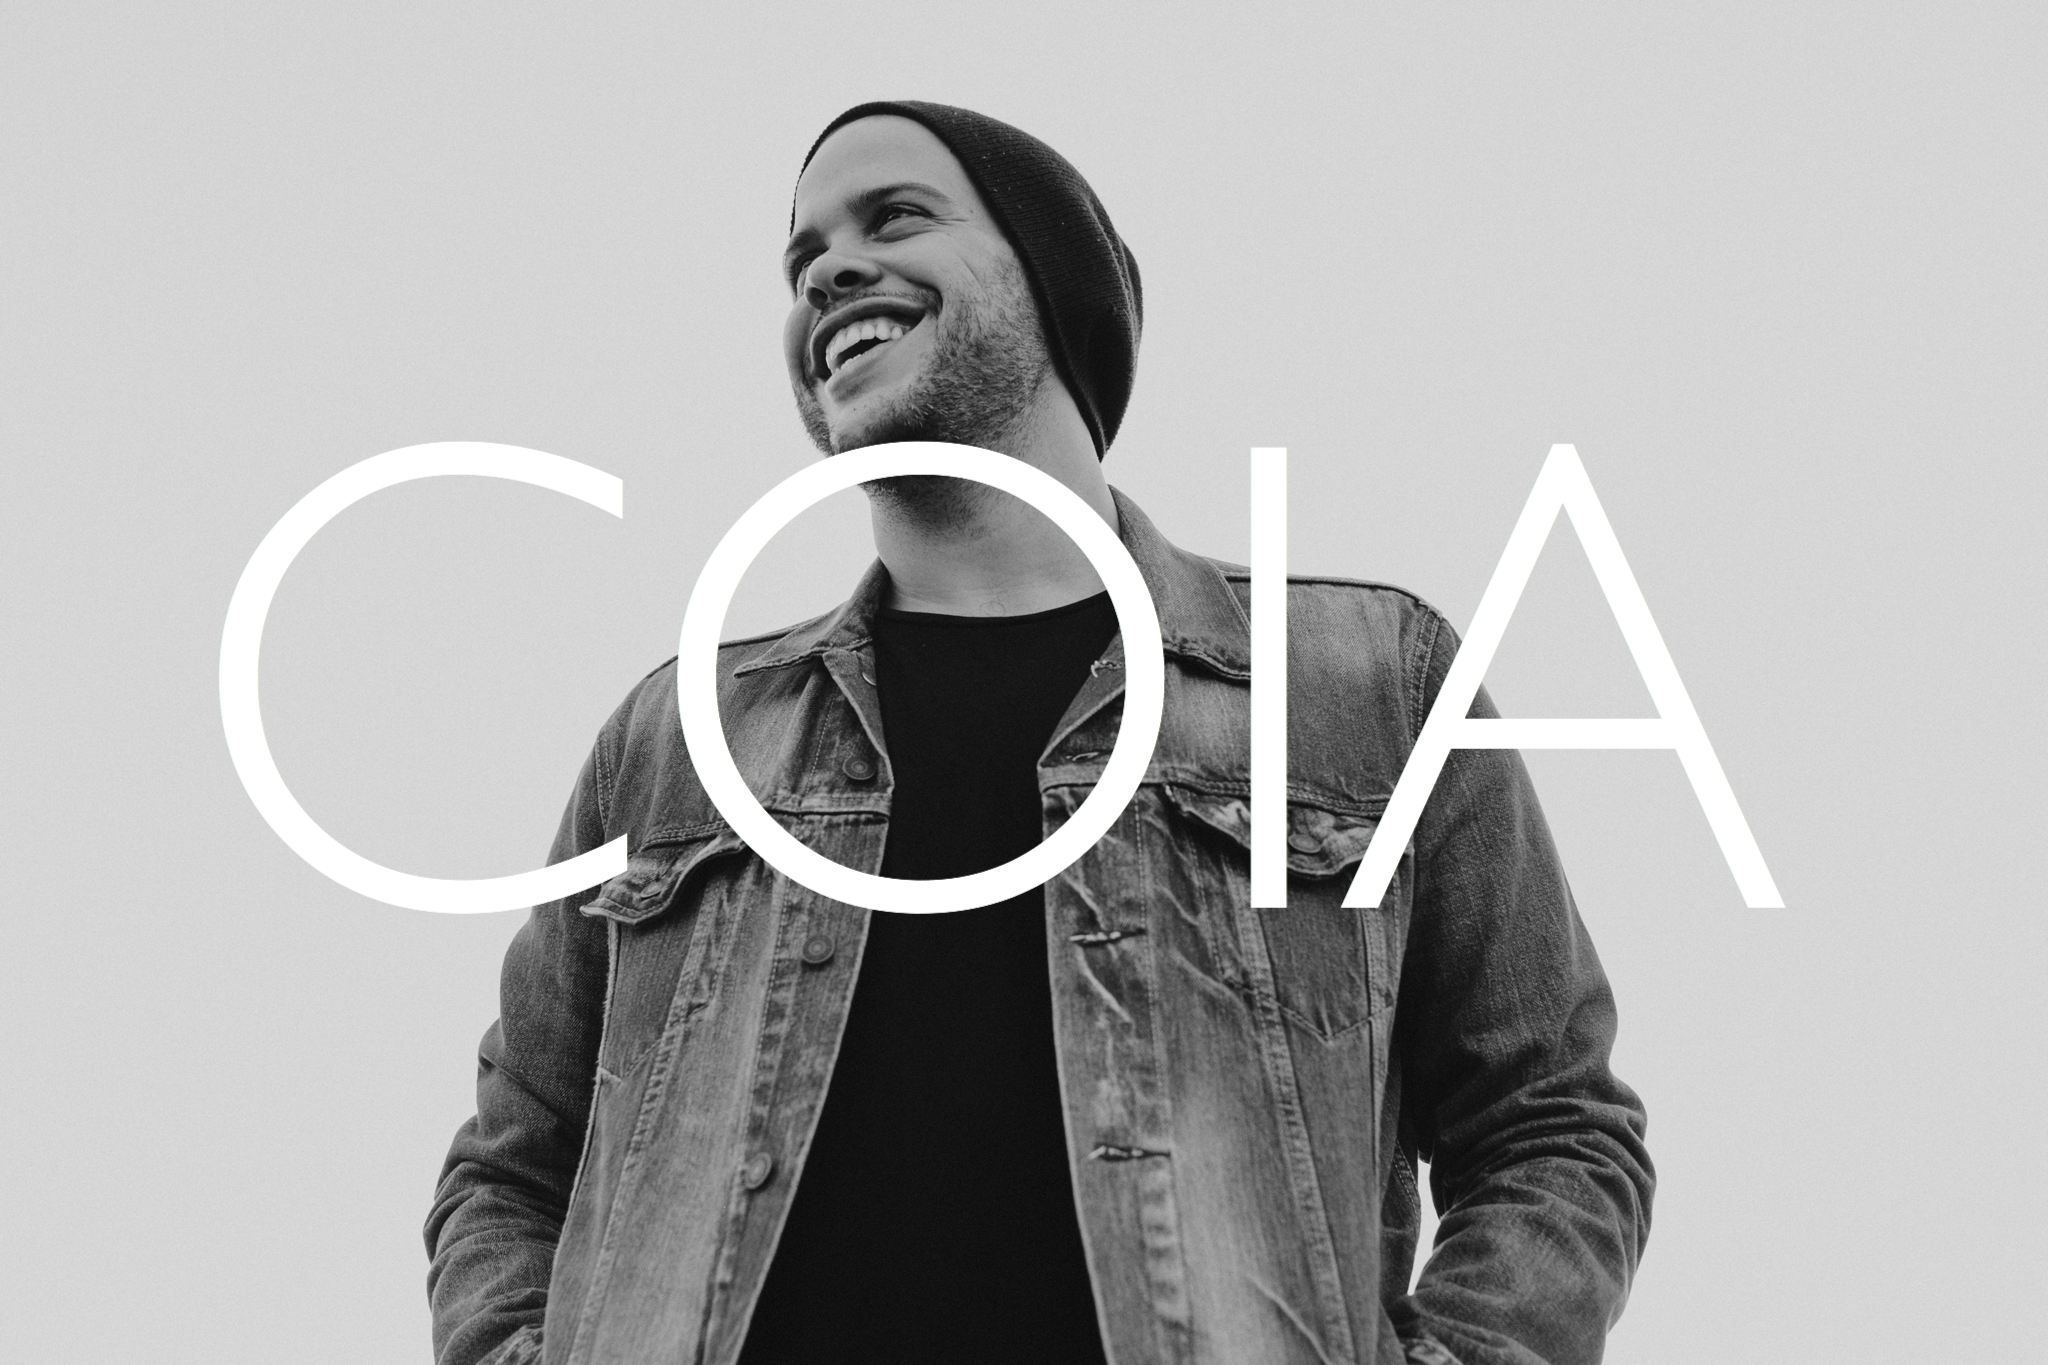 Singer-Songwriter Coia Bursts Into America's Music Industry With Distinct Sound